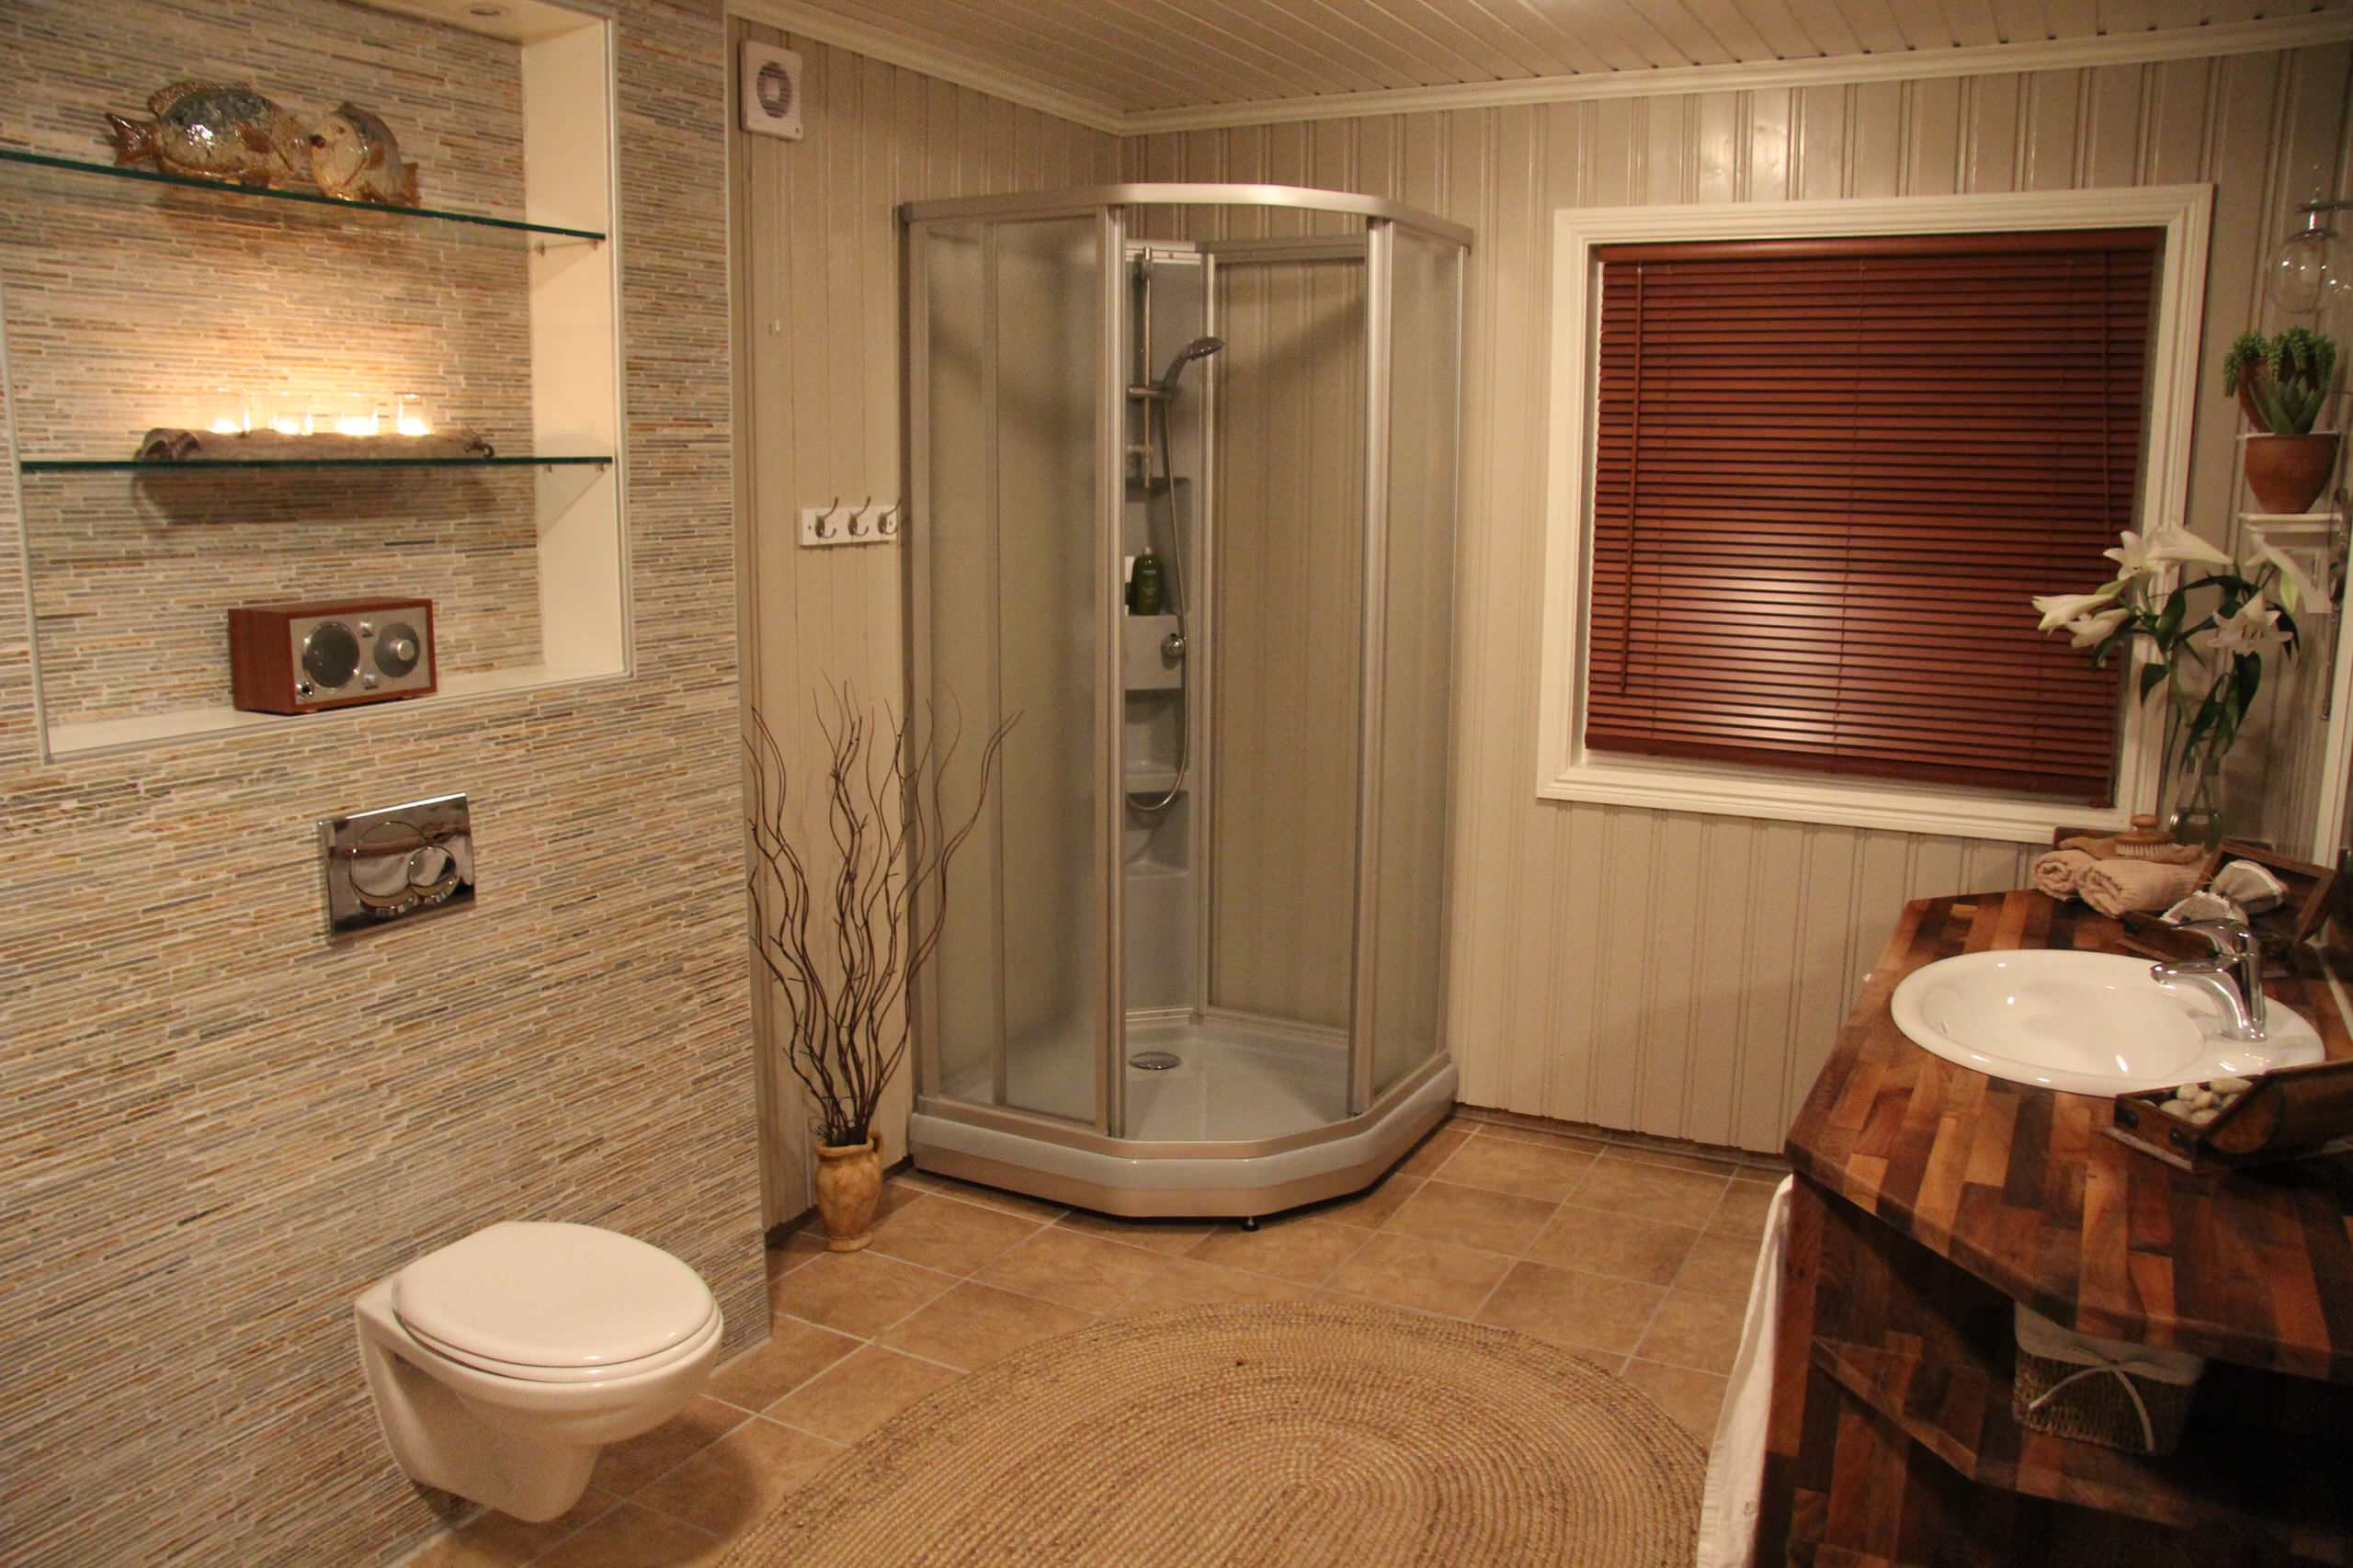 27 Nice Pictures And Ideas Craftsman Style Bathroom Tile 2019